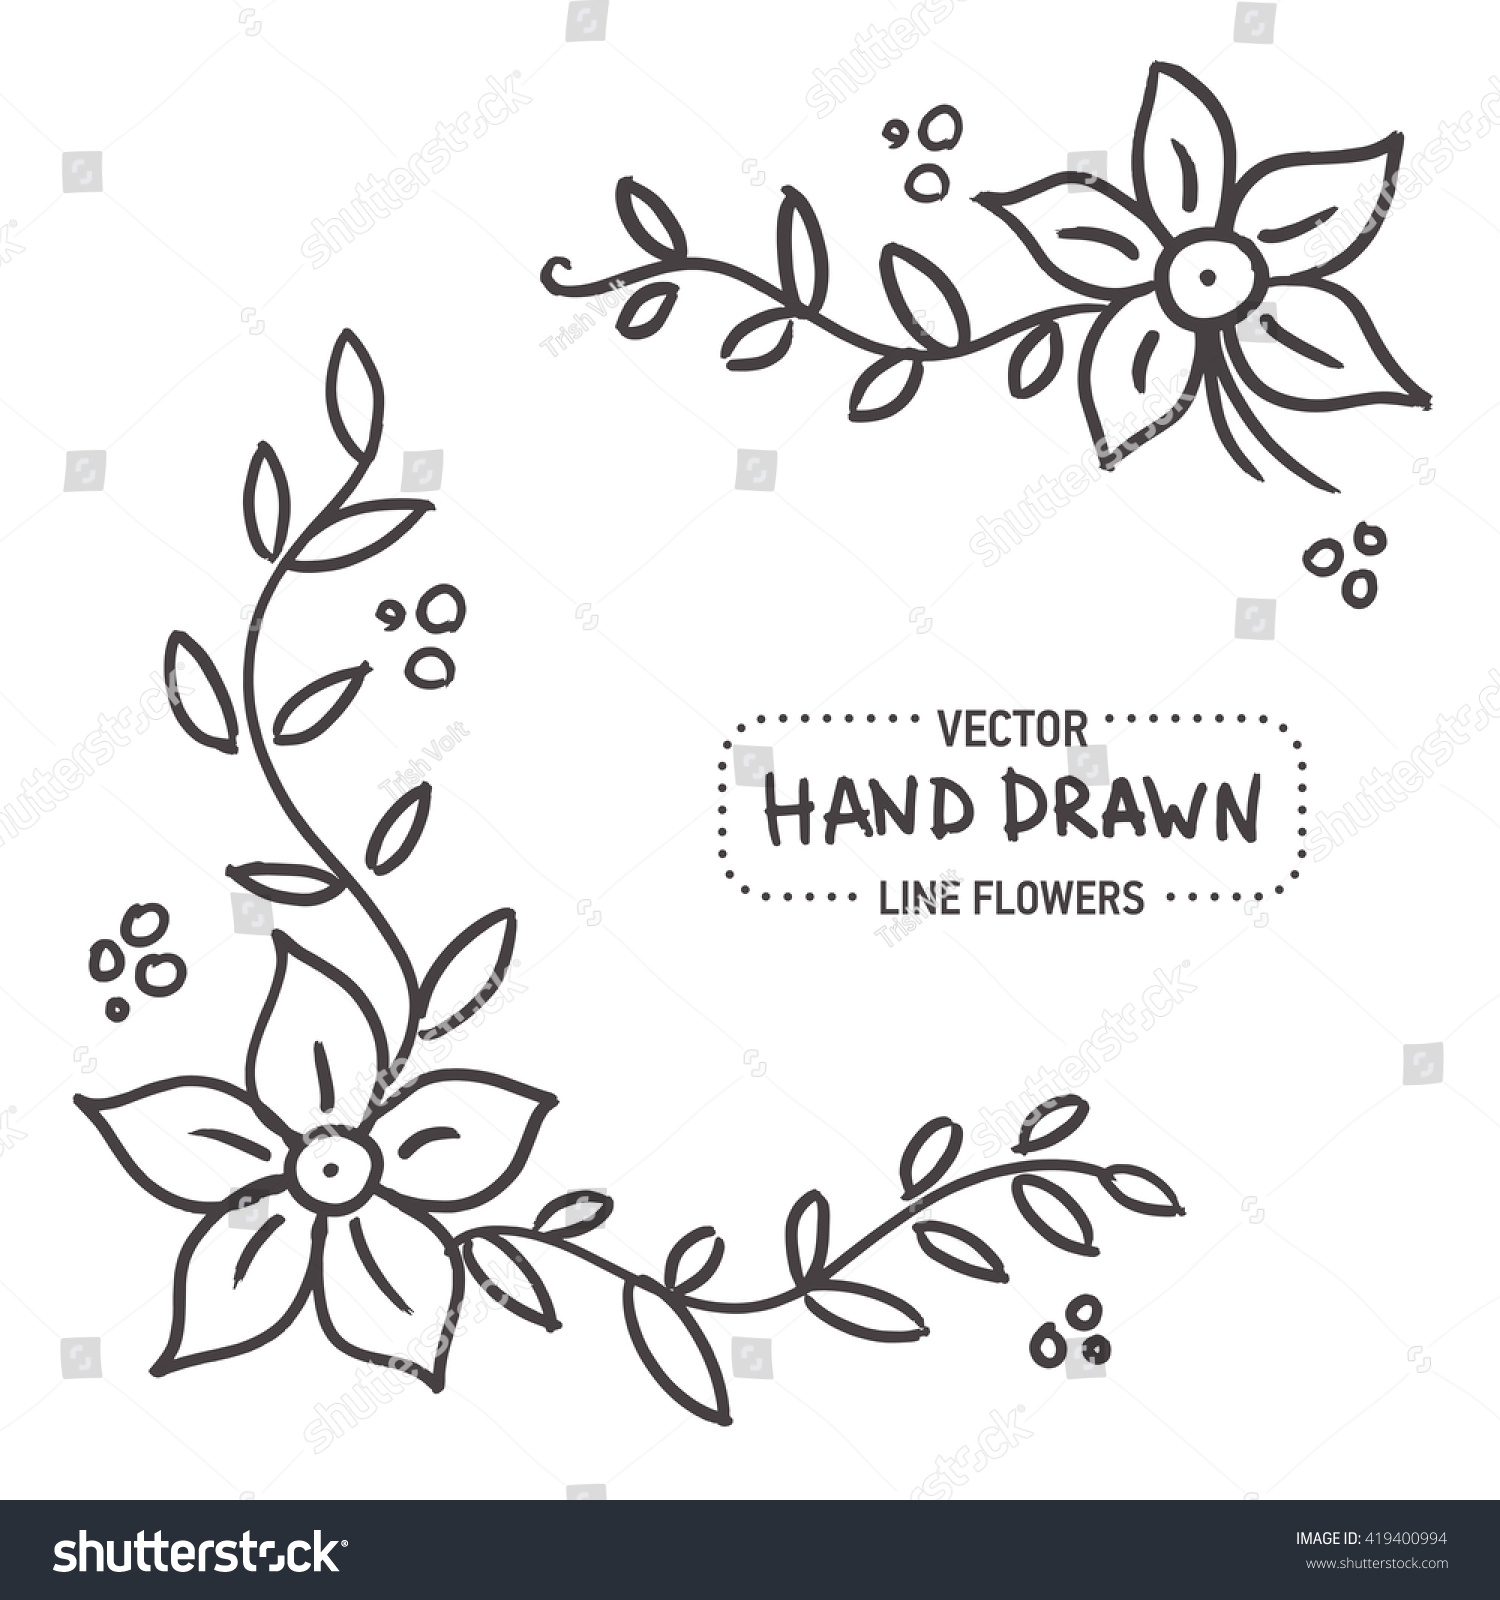 Simple Ornate Flower Frame Design Sketchy Hand Drawn Element Vector Illustration